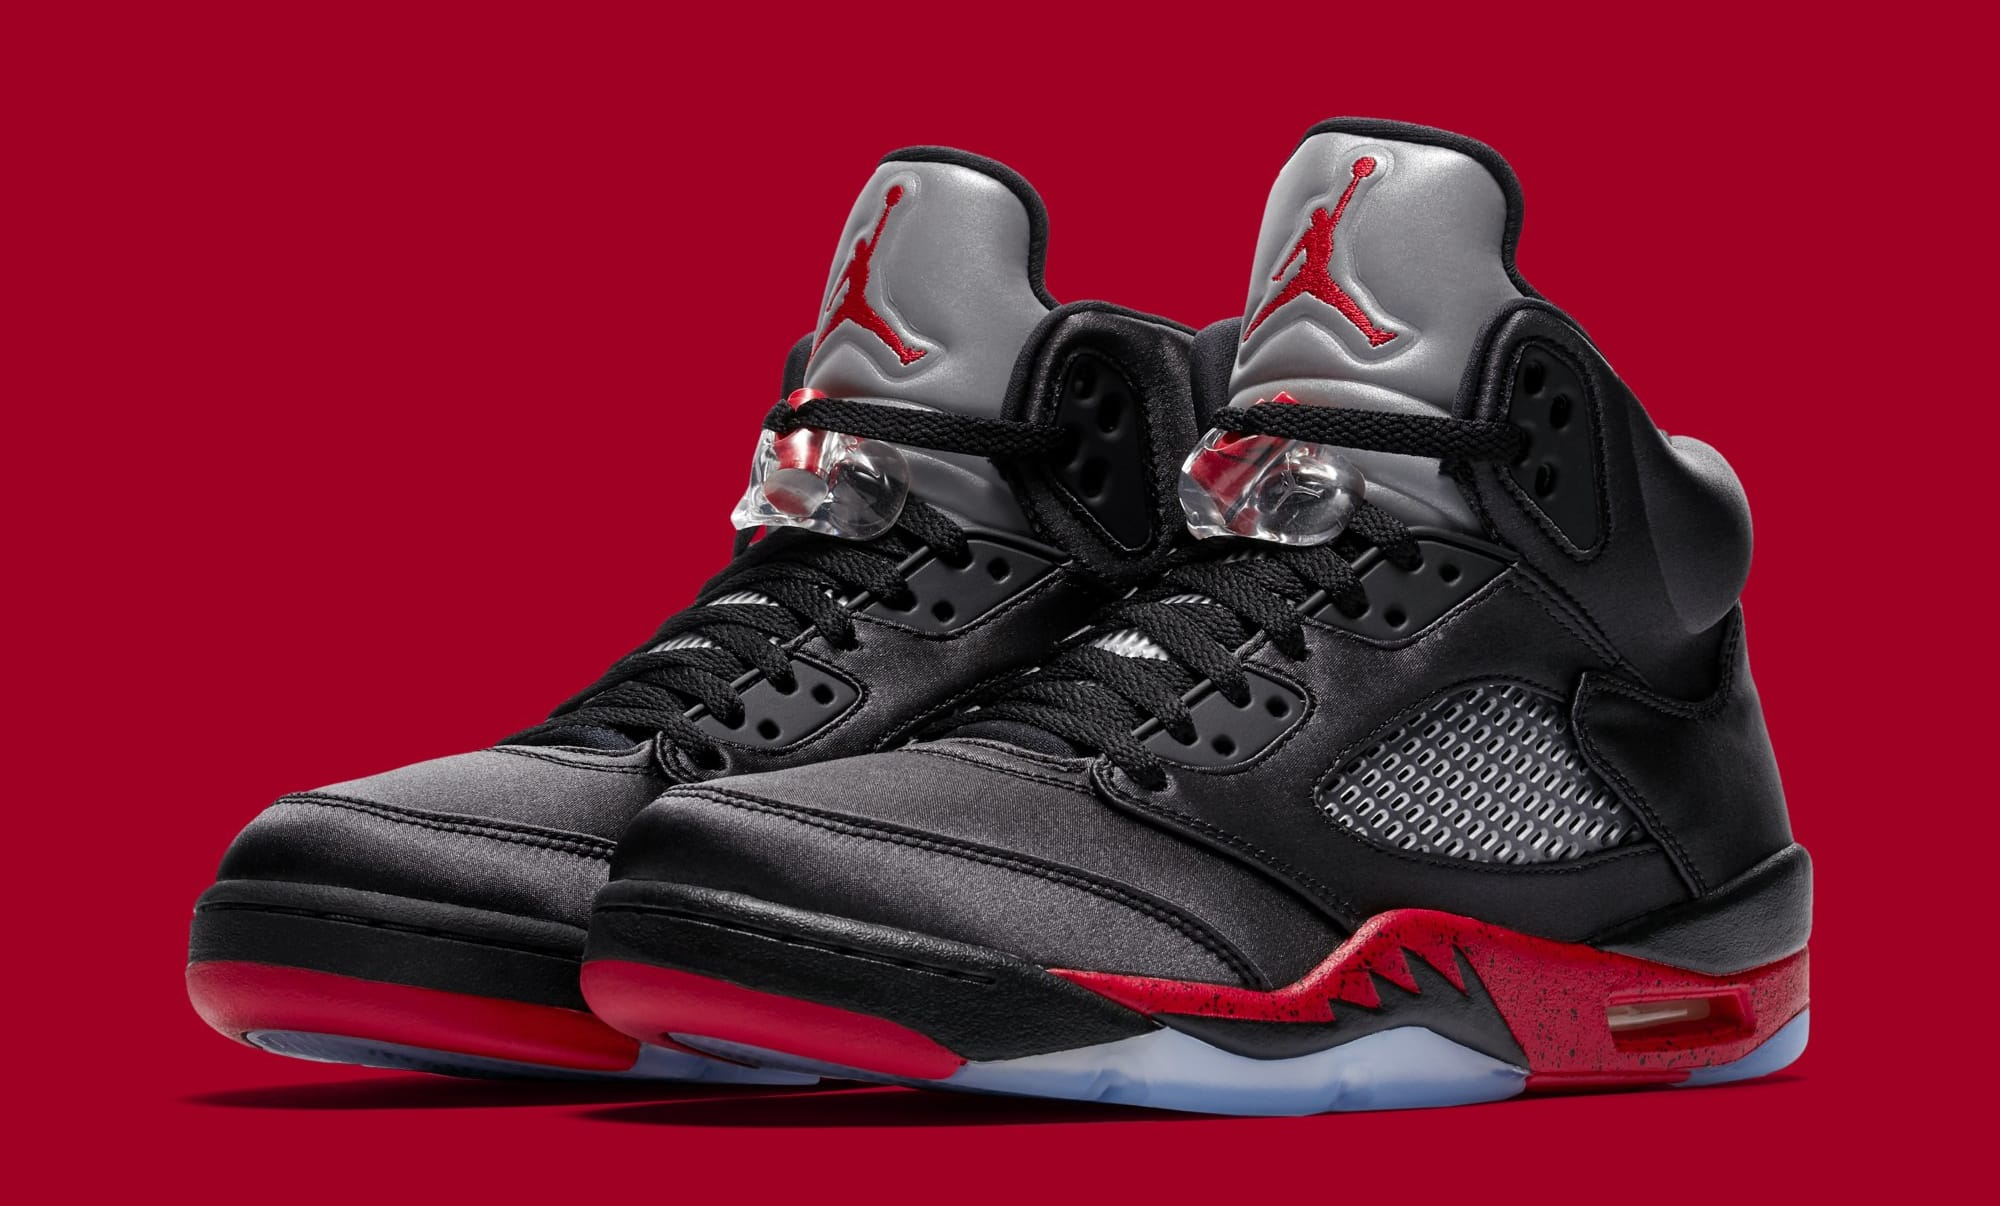 a75429ffcbb air jordan 5 bred. Featuring full leather construction, the Black/University  Red ...